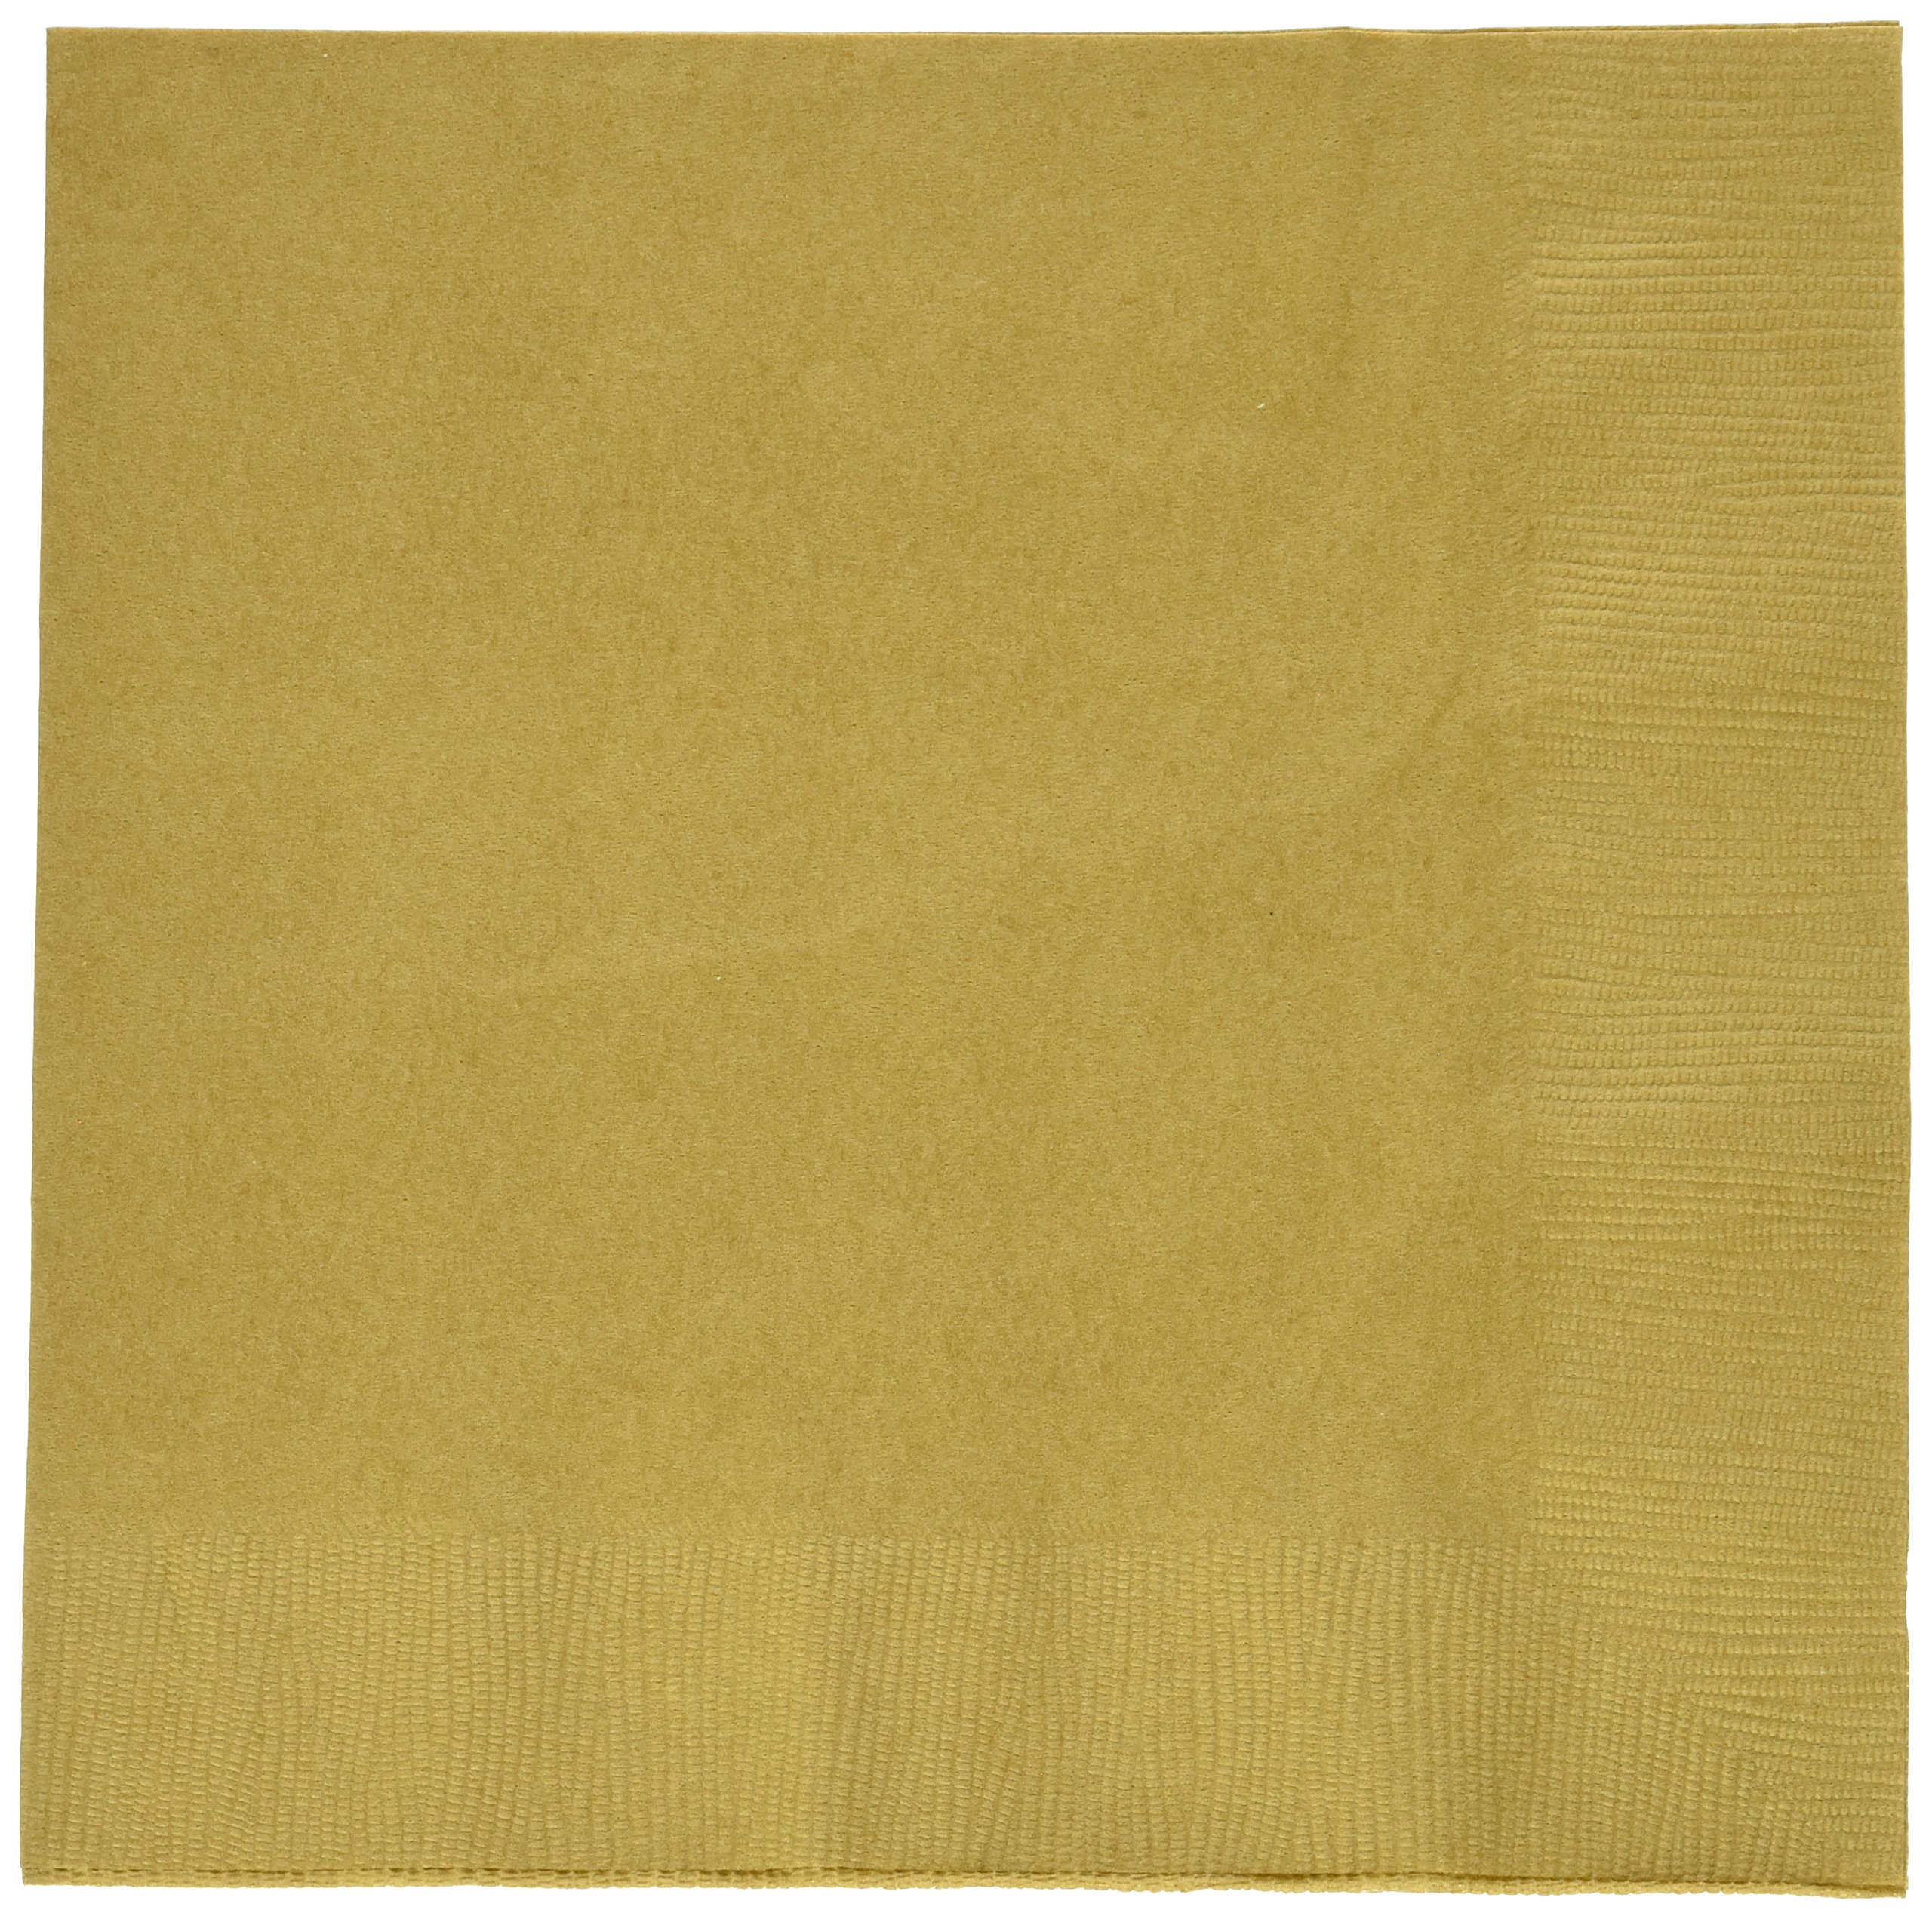 Amscan Disposable Party 2-Ply Dinner Napkins Tableware, Gold, Paper, 7'' x 7'', Pack of 20